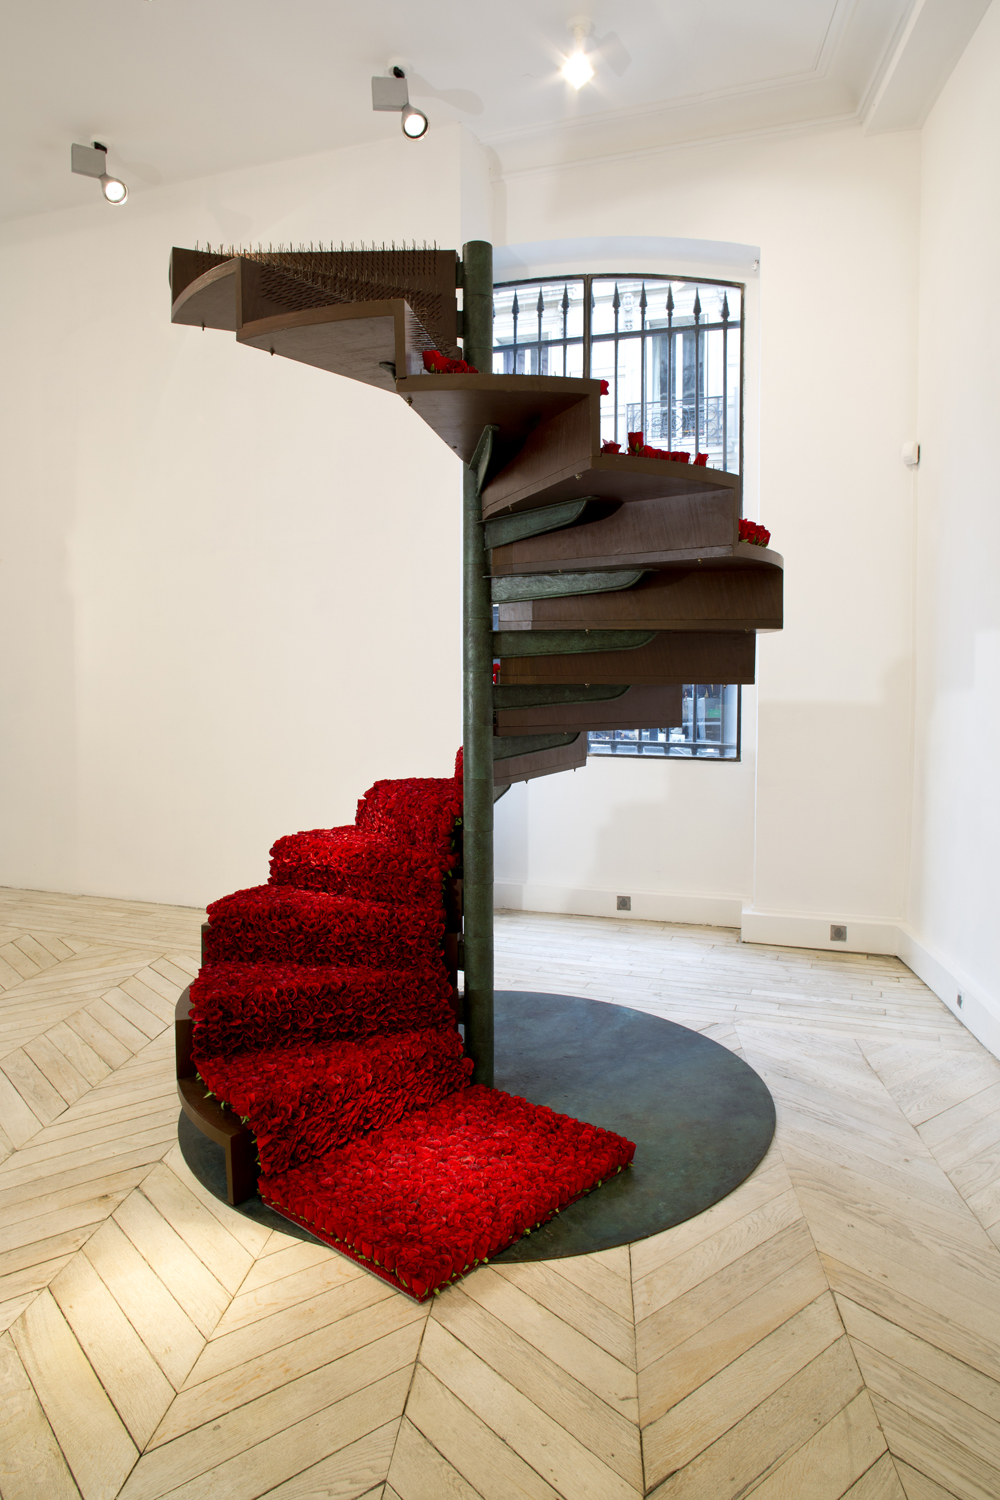 Like In Love Perhaps, 2011 - Wood, Nails and ornamental roses 274 x 198 x 198 cm